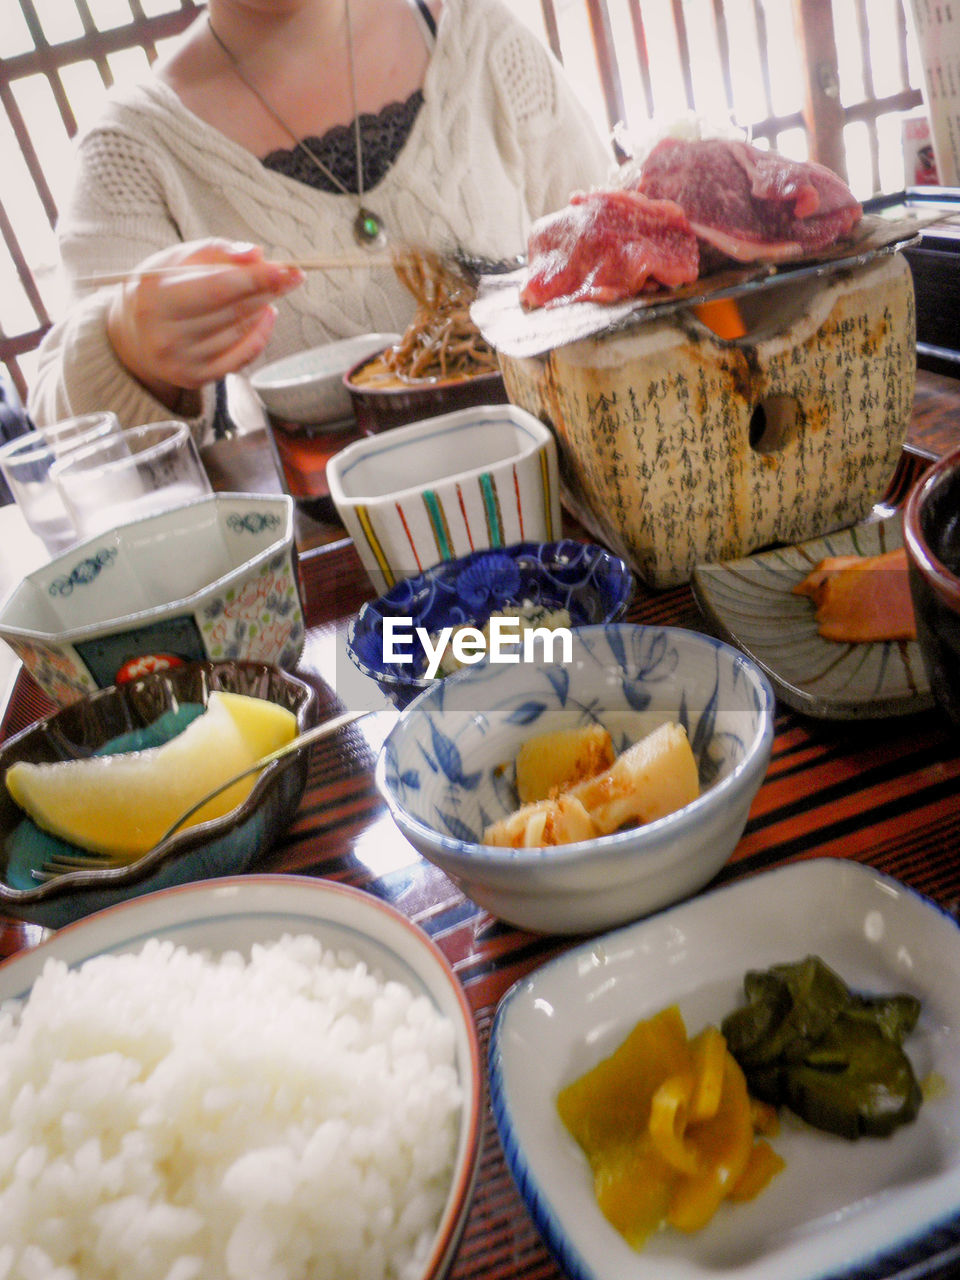 food, food and drink, plate, bowl, ready-to-eat, table, real people, indoors, meal, variation, freshness, one person, healthy eating, human hand, close-up, day, people